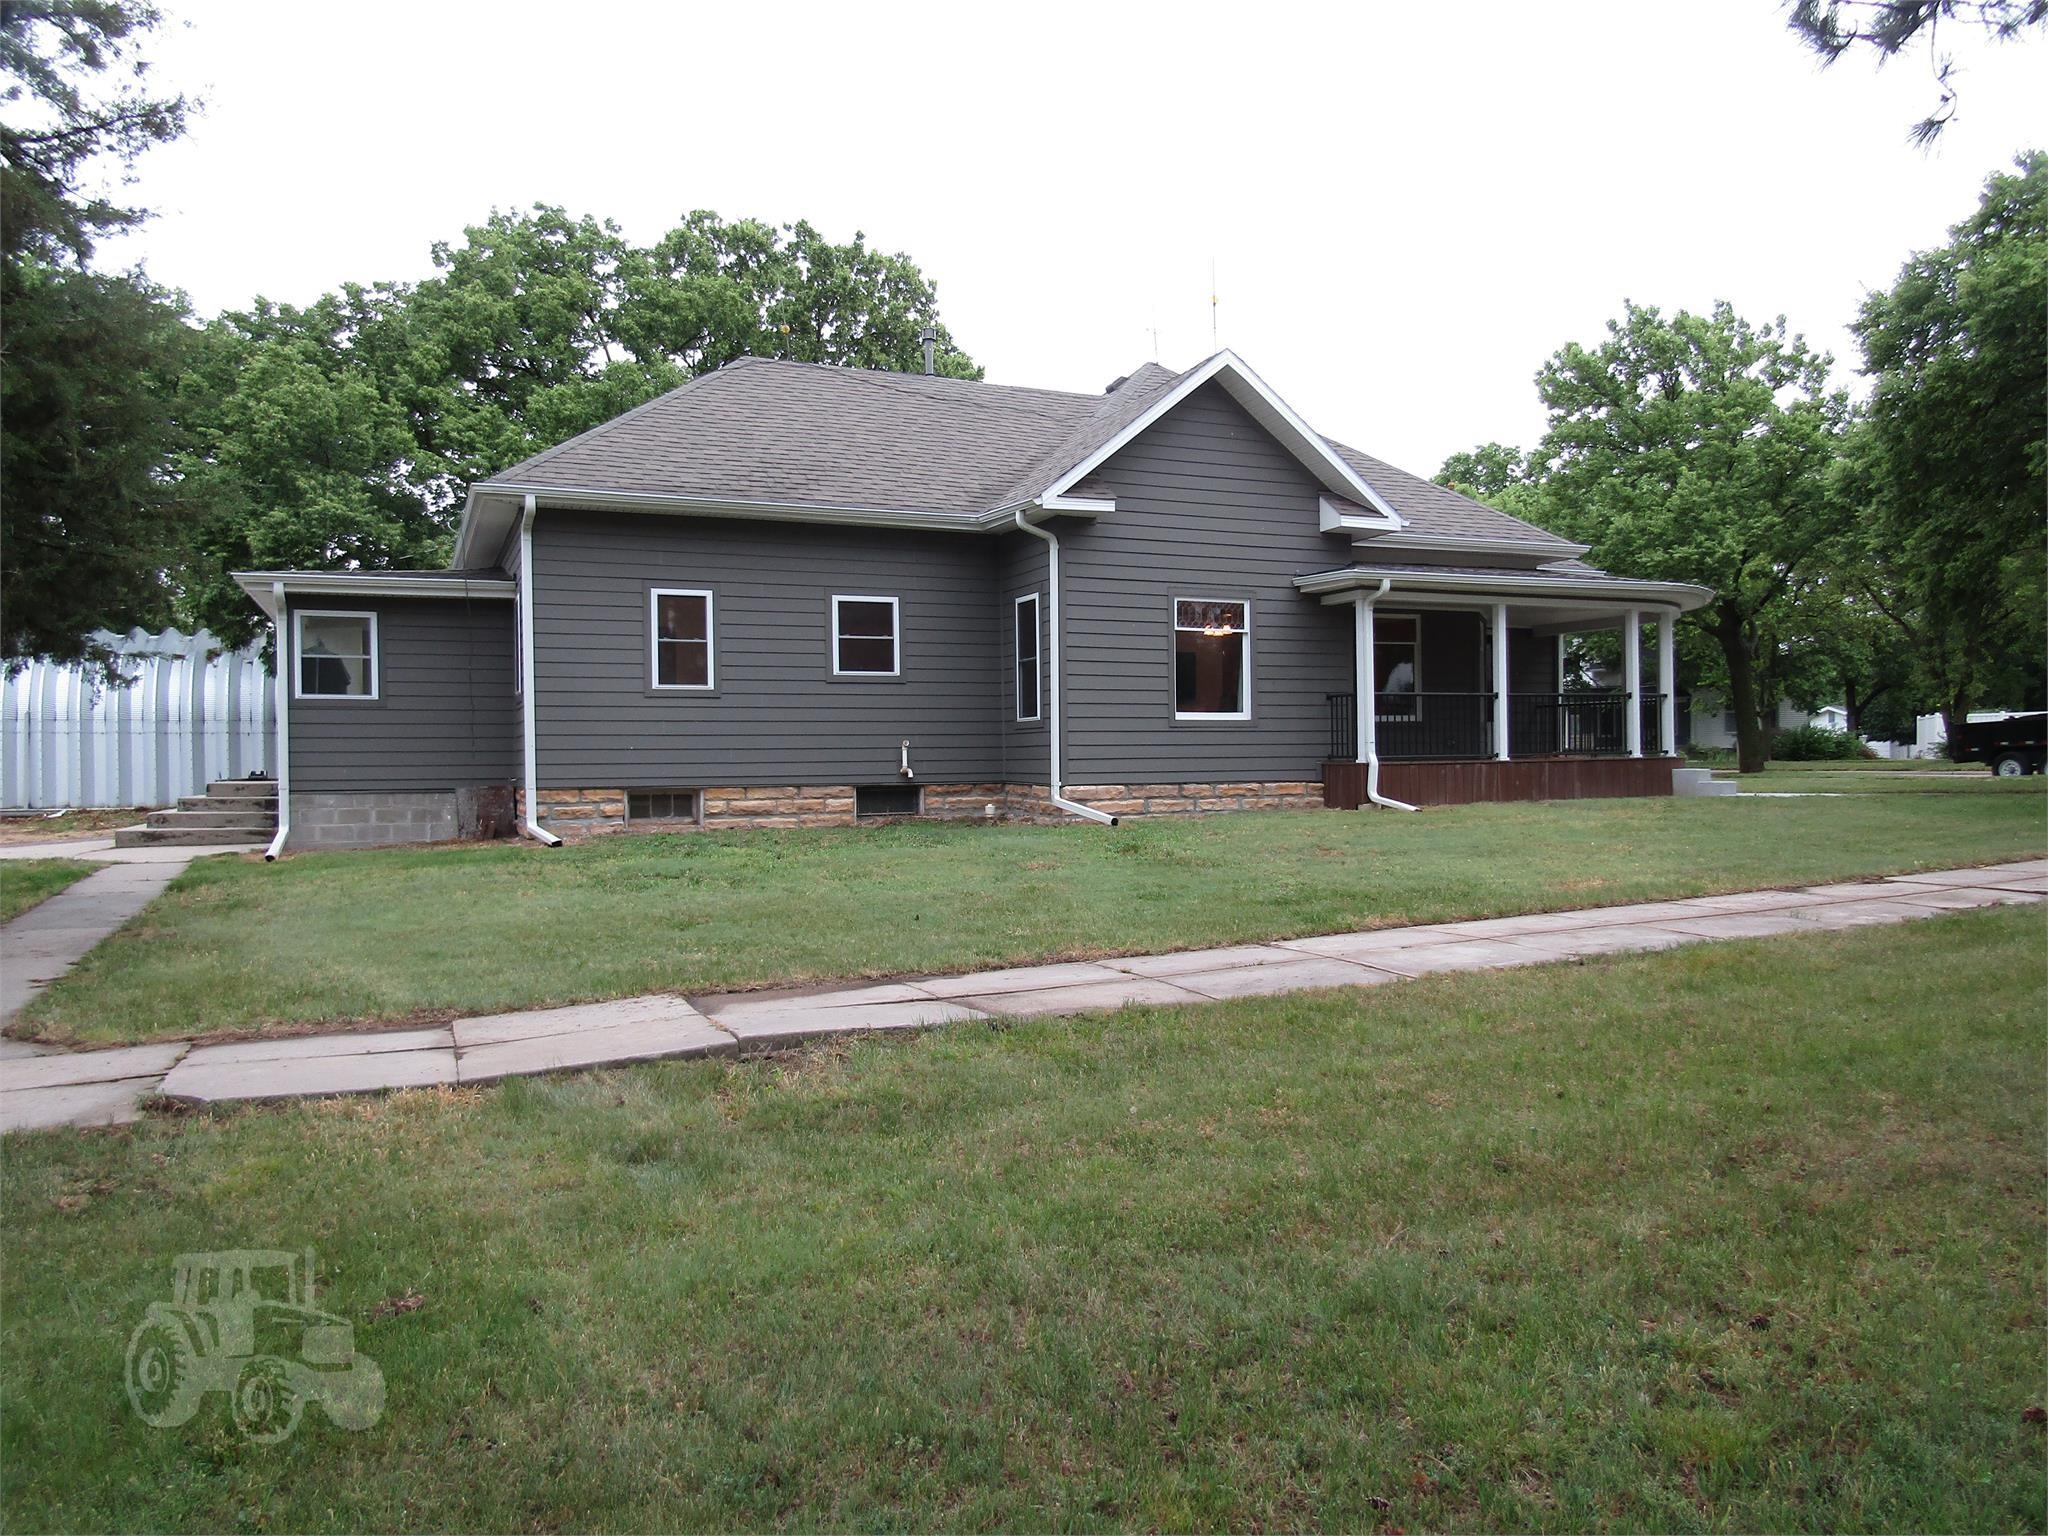 401 N Lincoln Other Items For Sale 1 Listings Tractorhouse Com Page 1 Of 1